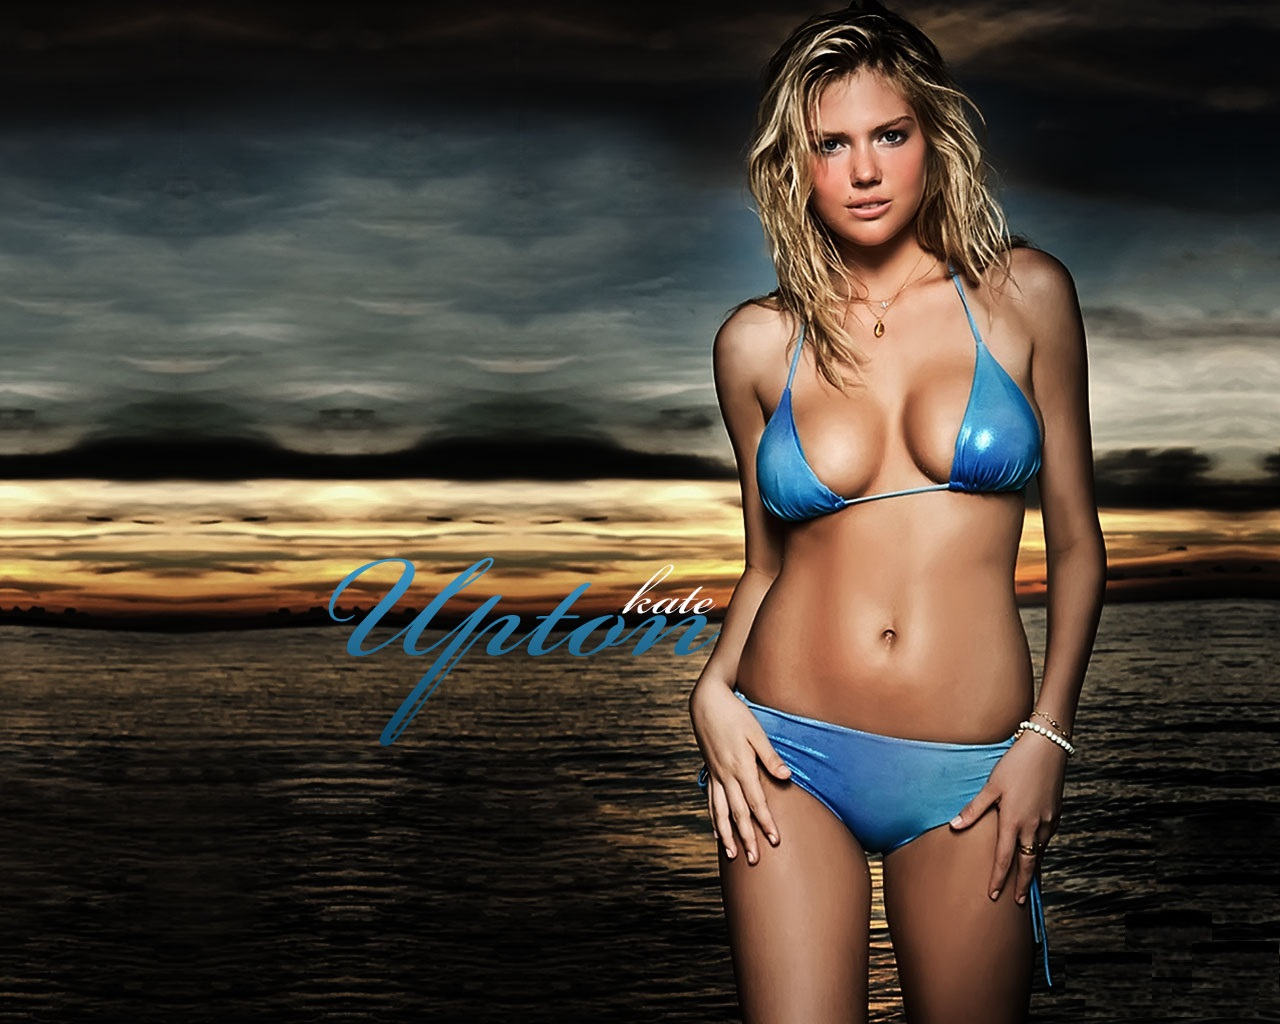 Kate upton wallpapers pictures images kate upton wallpaper voltagebd Gallery